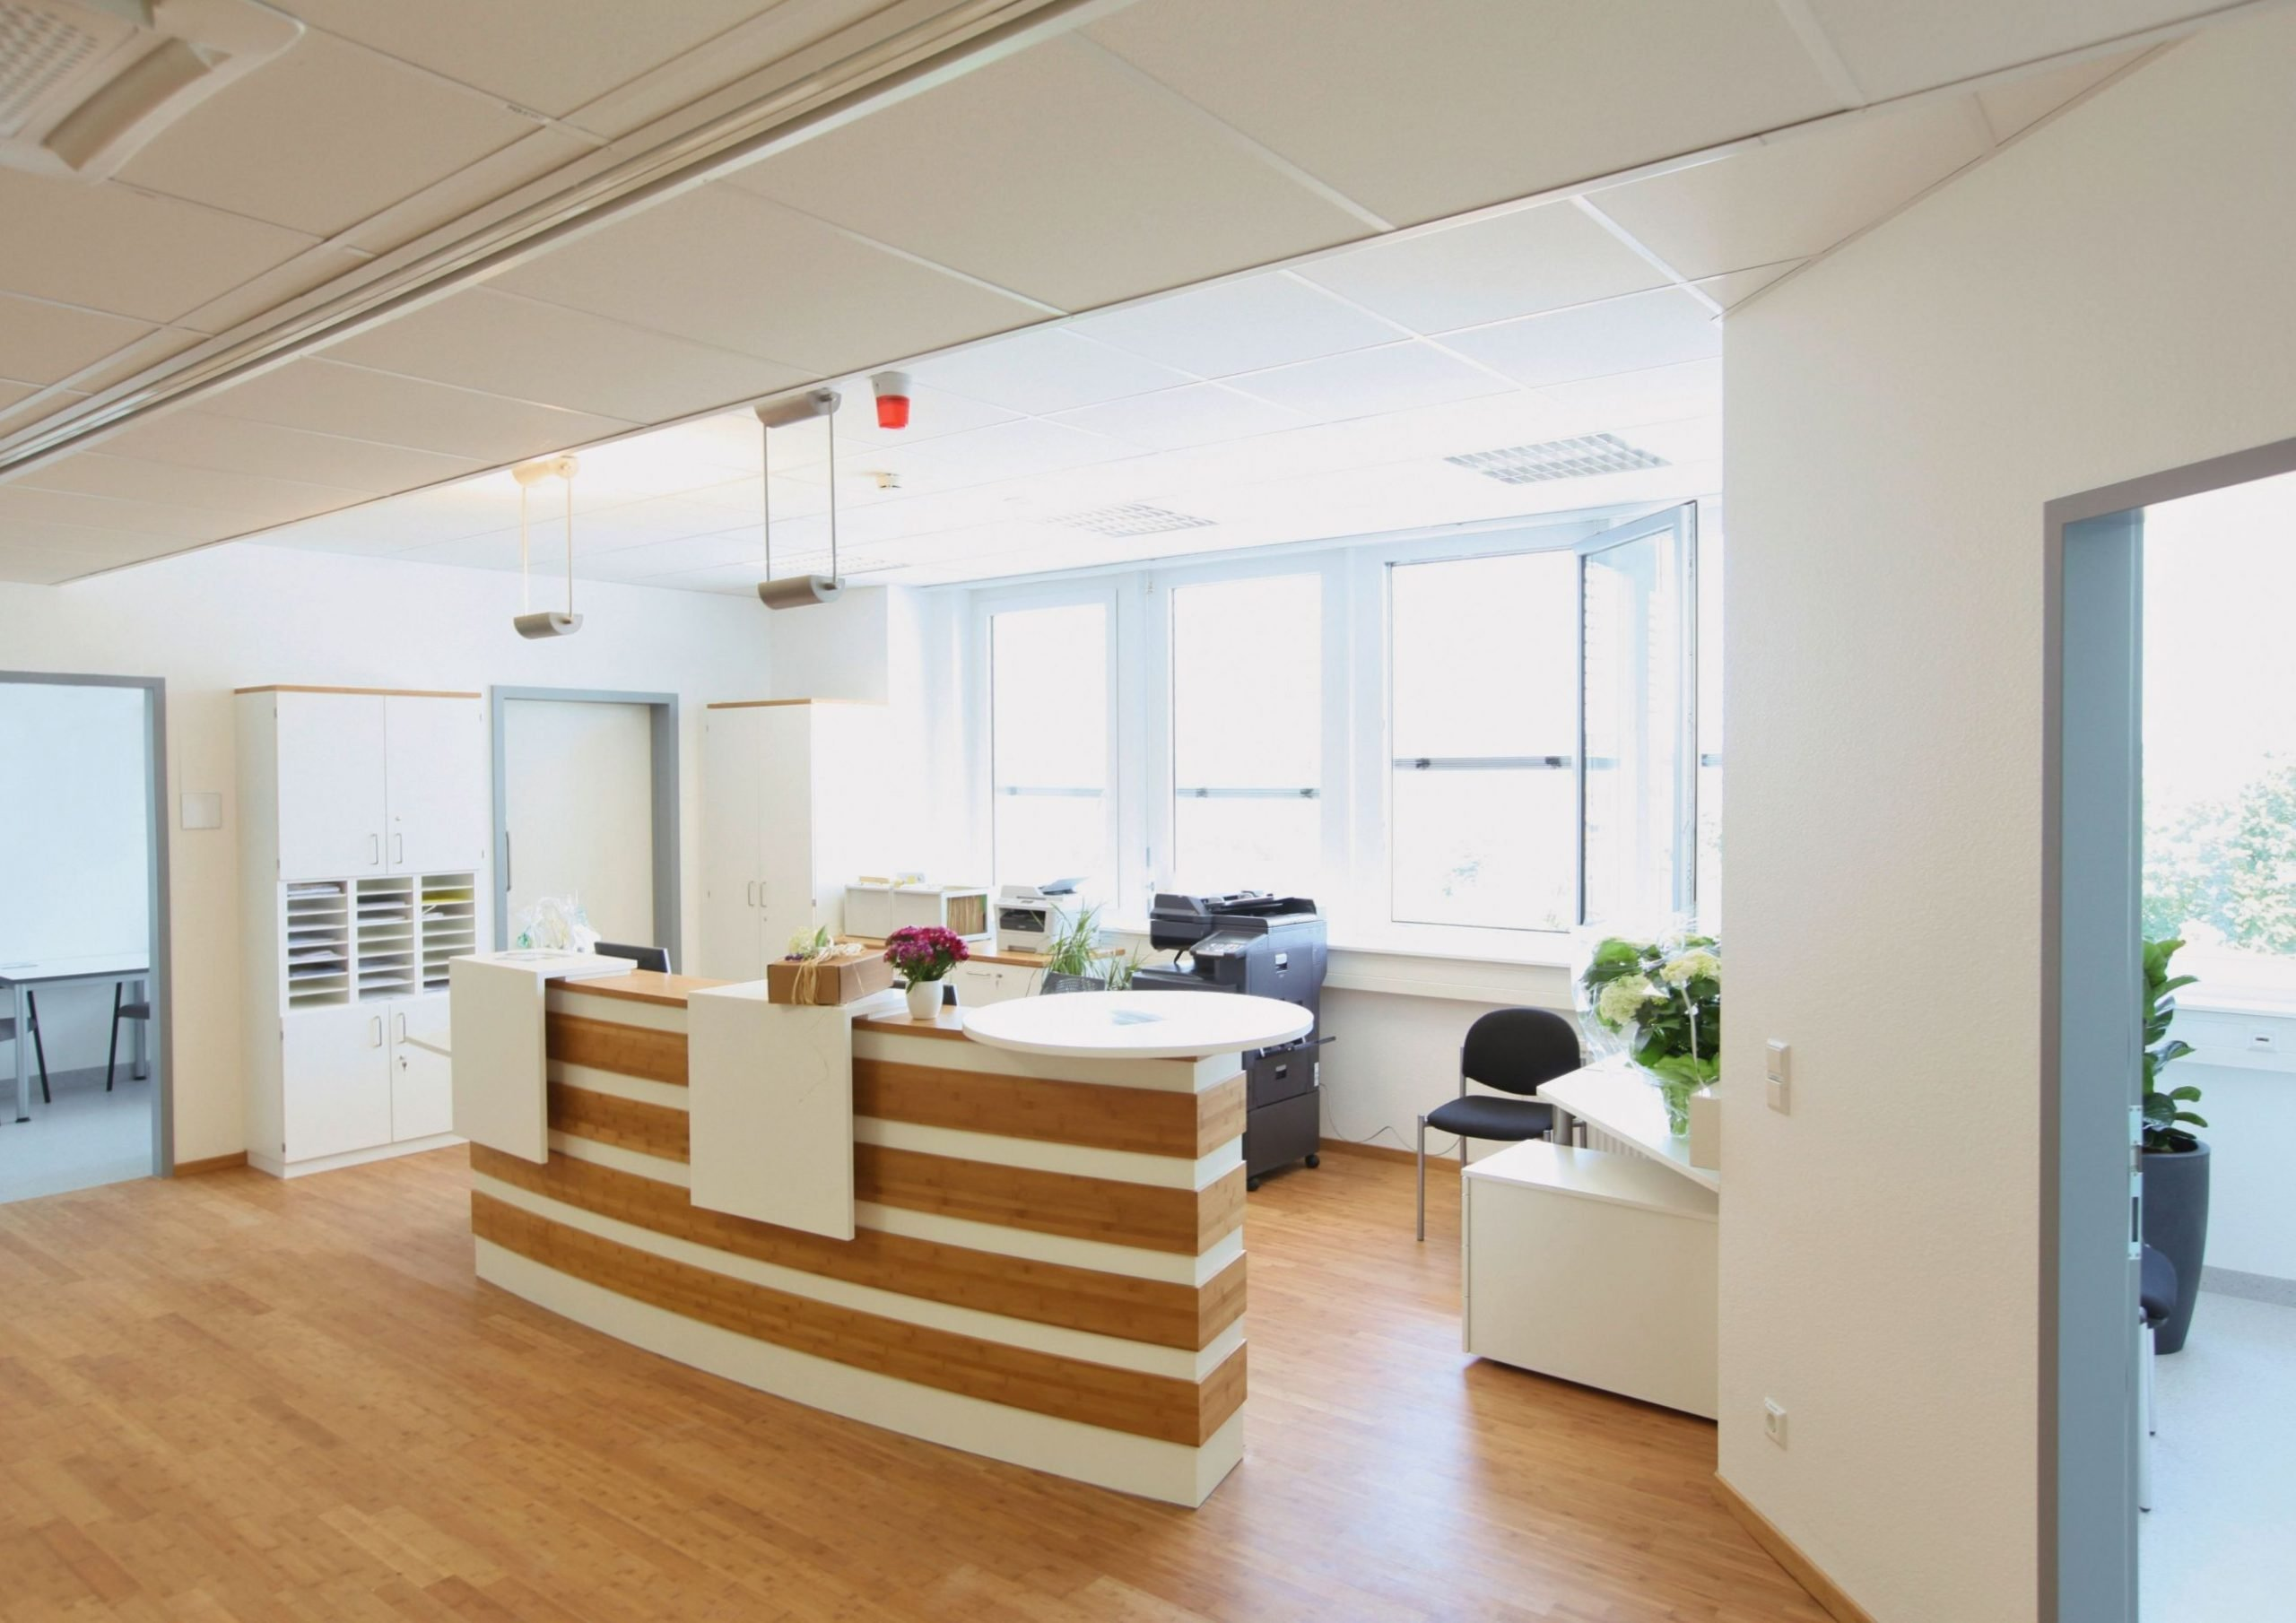 Medical office reception after a refurbishment